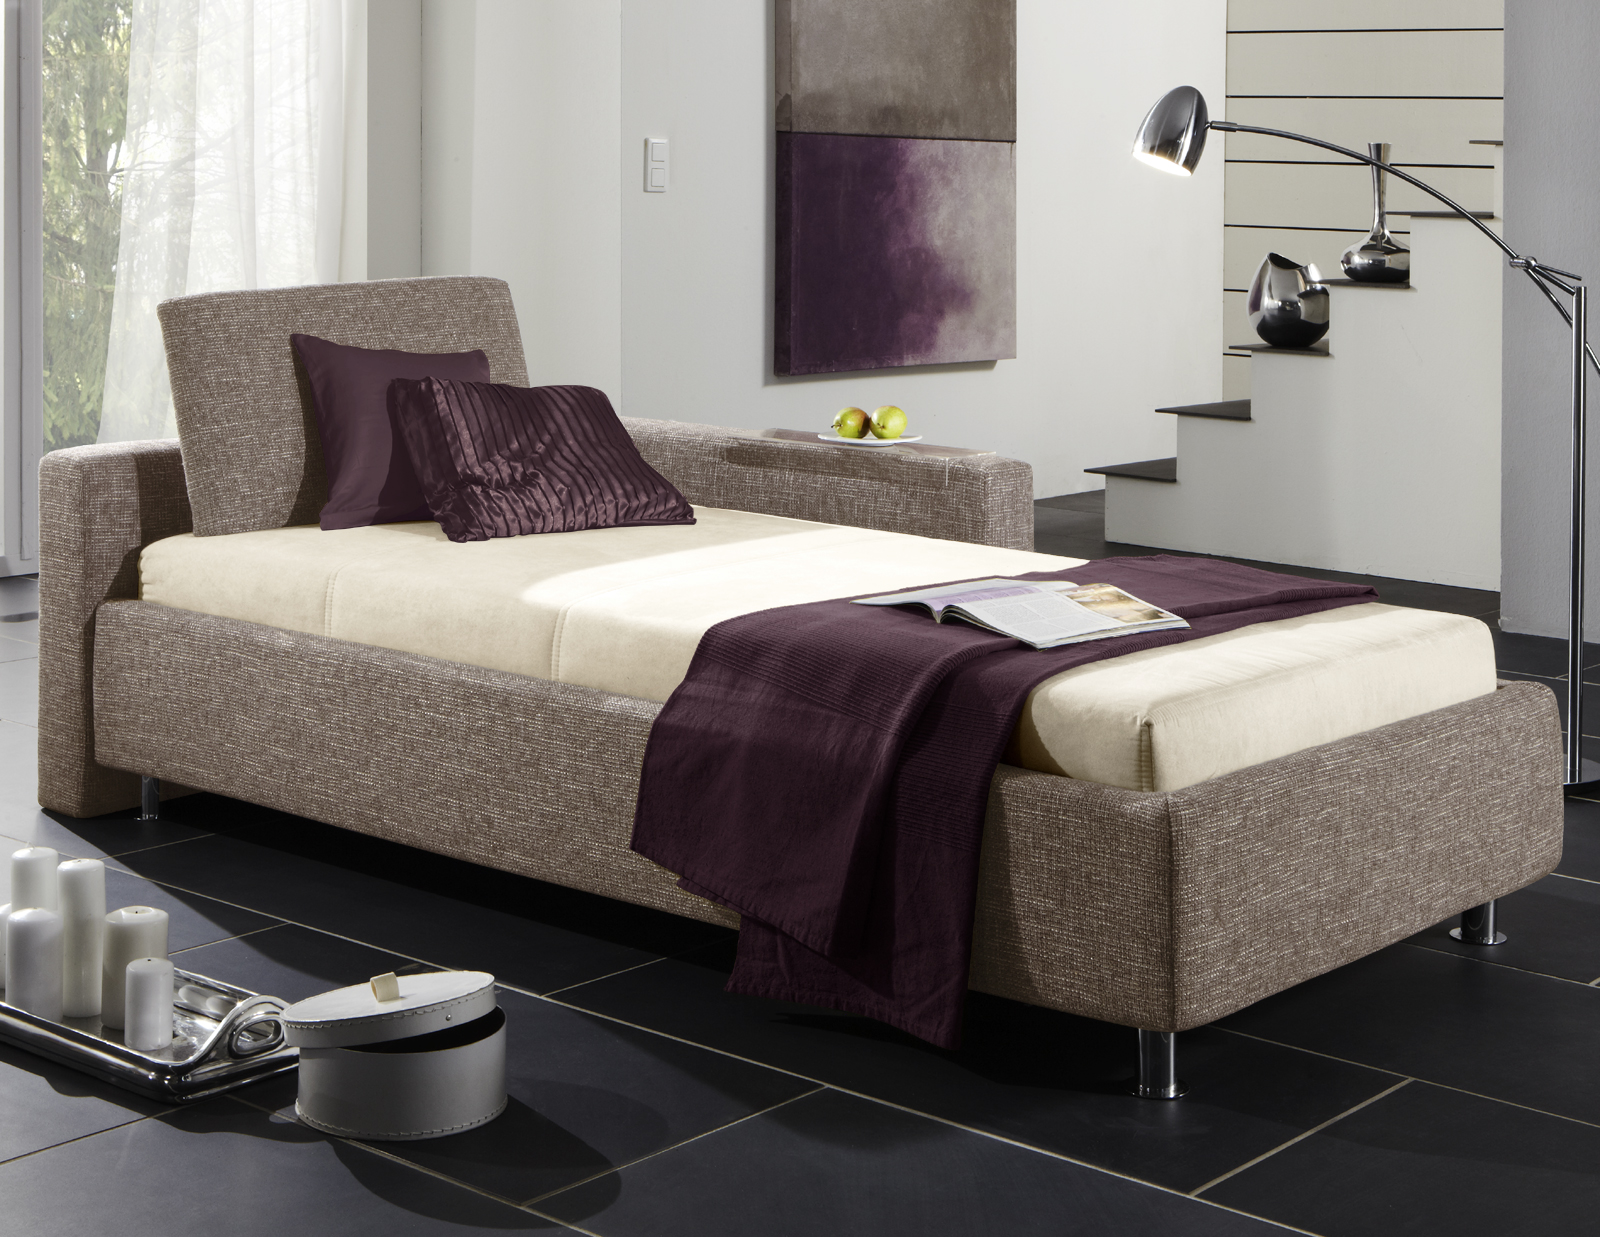 einzelbett mit bettkasten. Black Bedroom Furniture Sets. Home Design Ideas